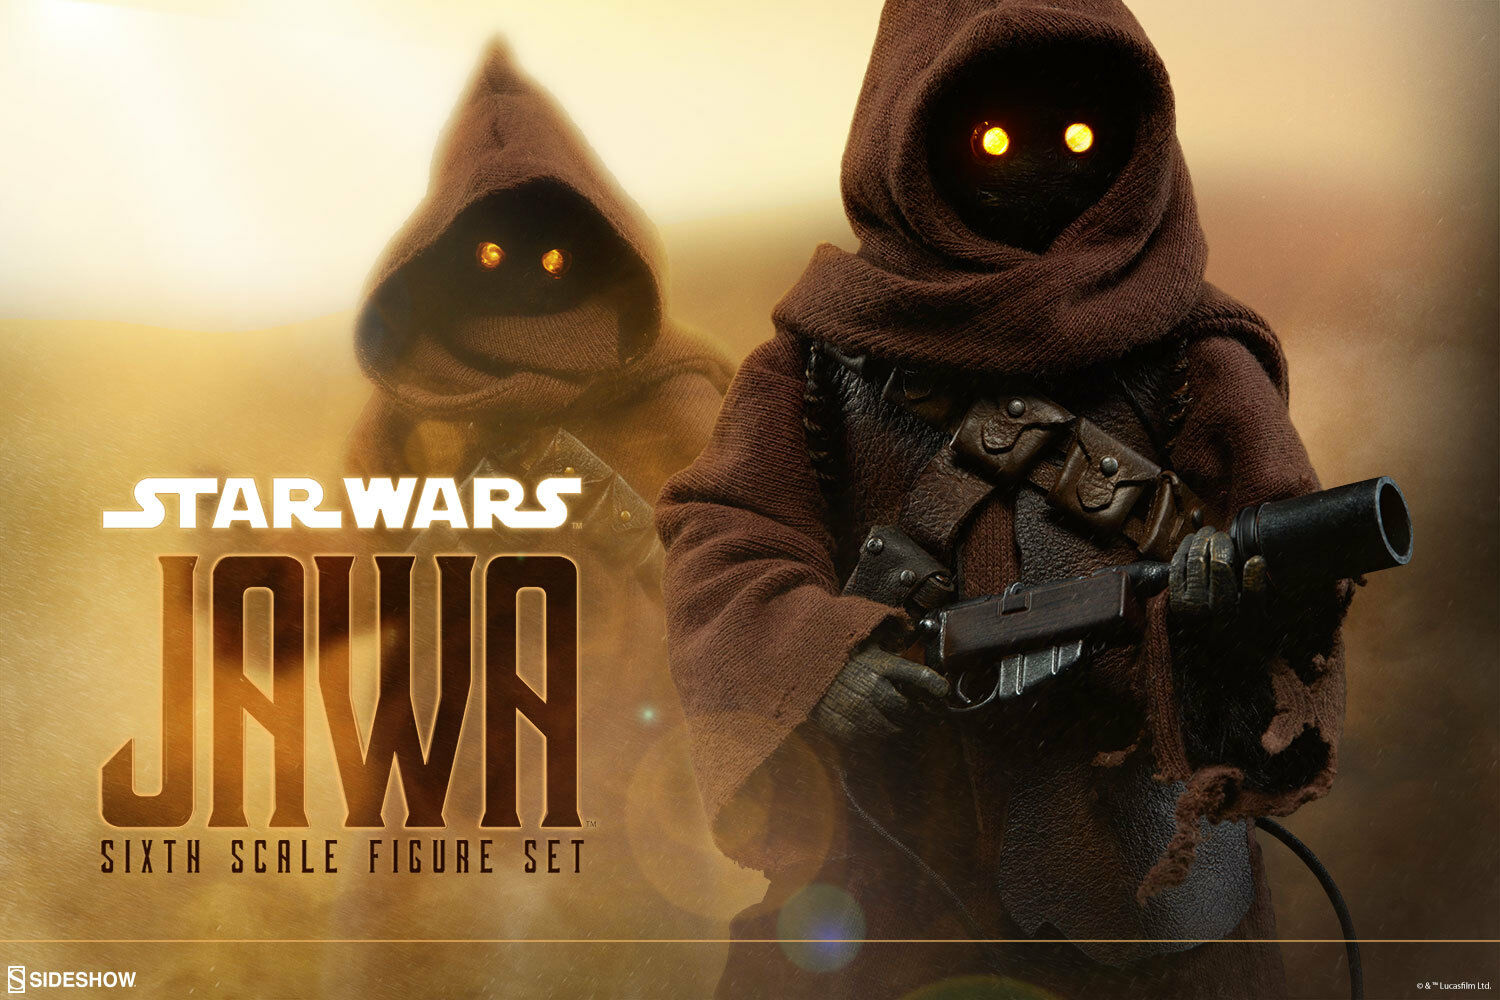 Star Wars Jawa Exclusive Sixth Scale Figure by Sideshow Collectibles